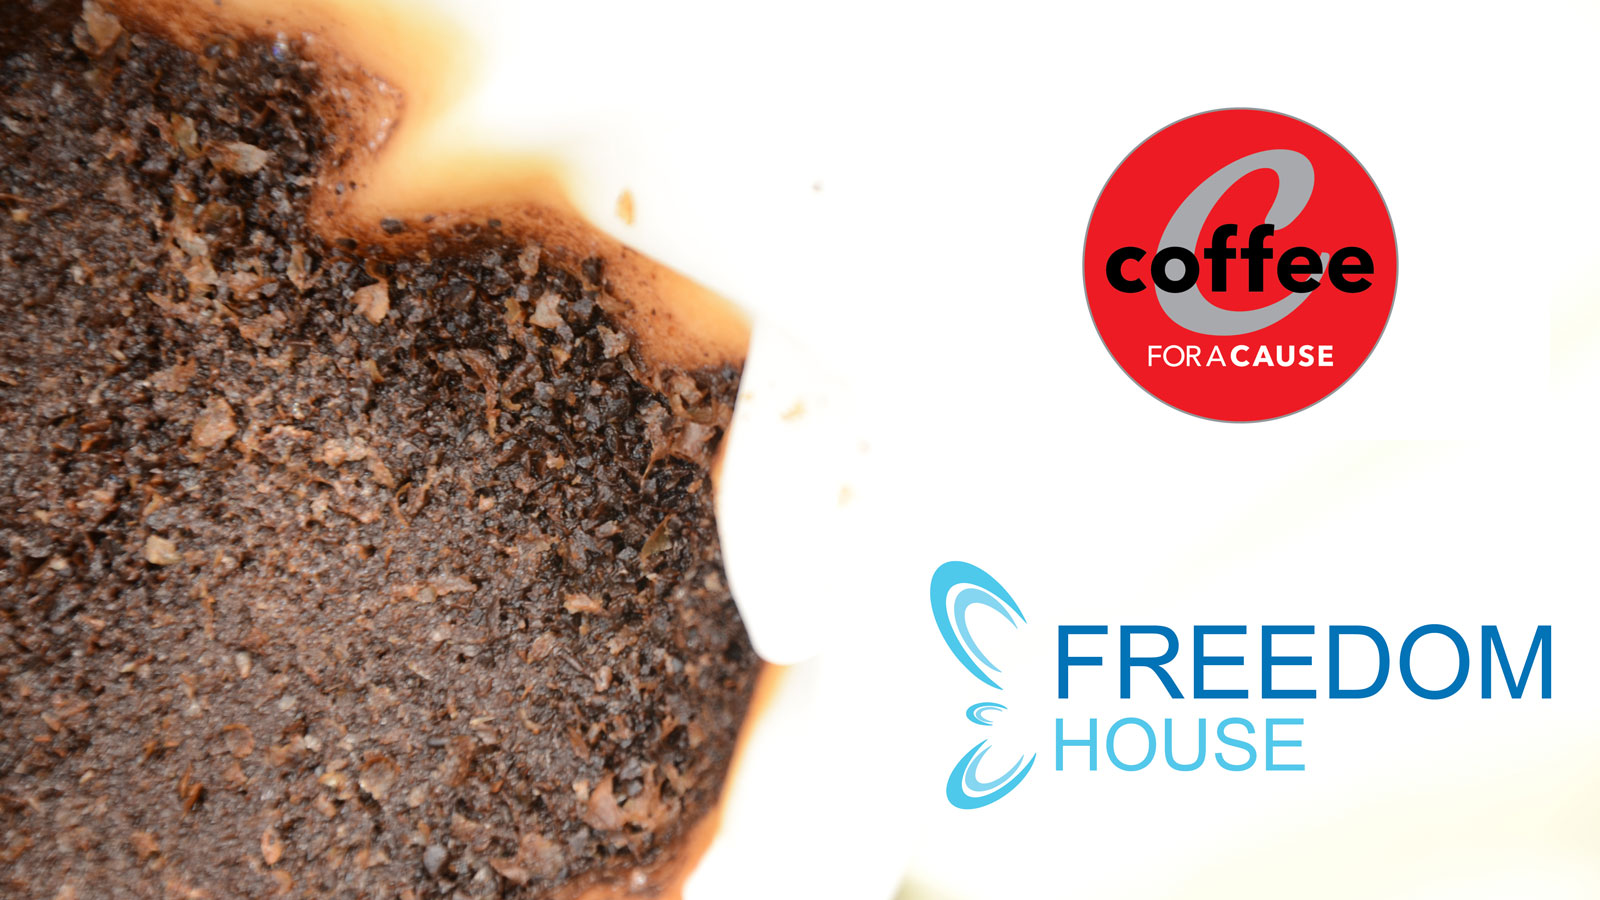 Coffee-For-A-Cause-Freedom-House.jpg